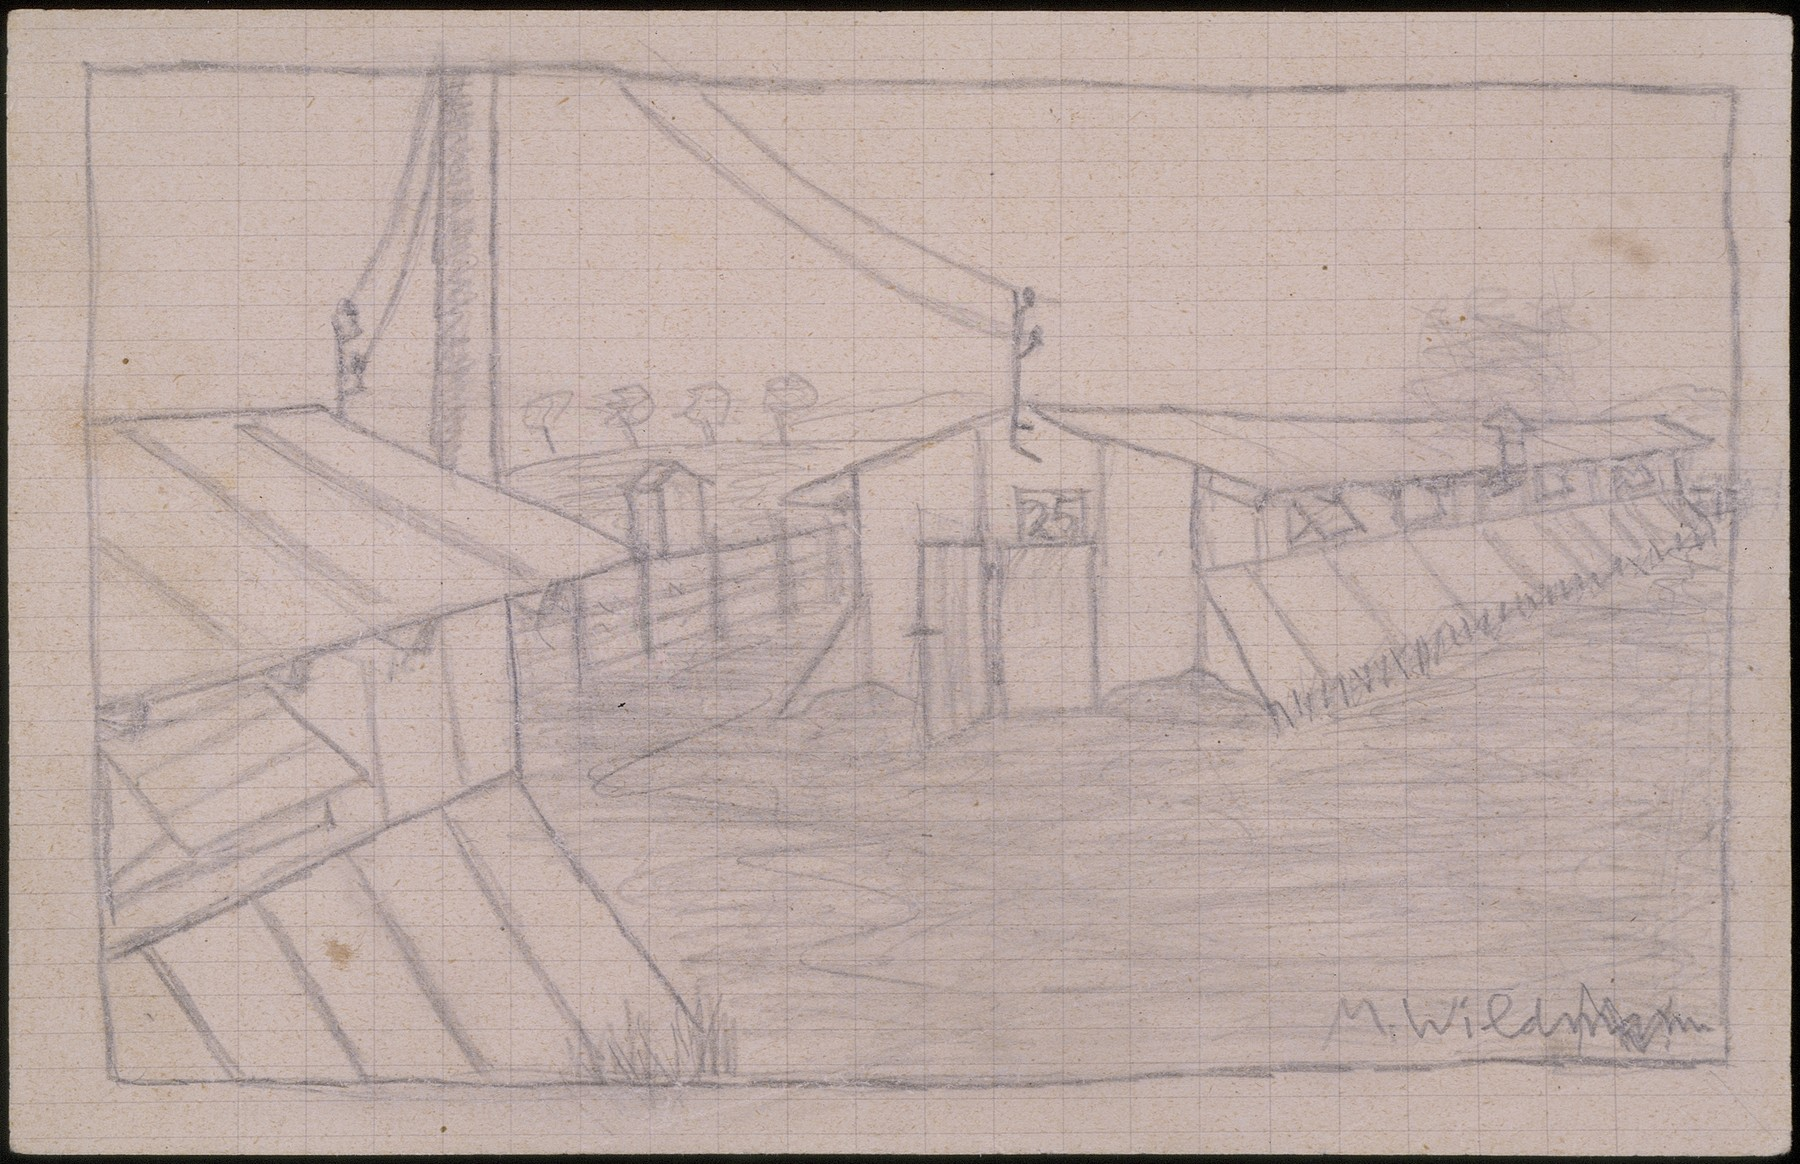 Pencil sketch of a group of barracks at the Gurs transit camp signed by Manfred Wildman.